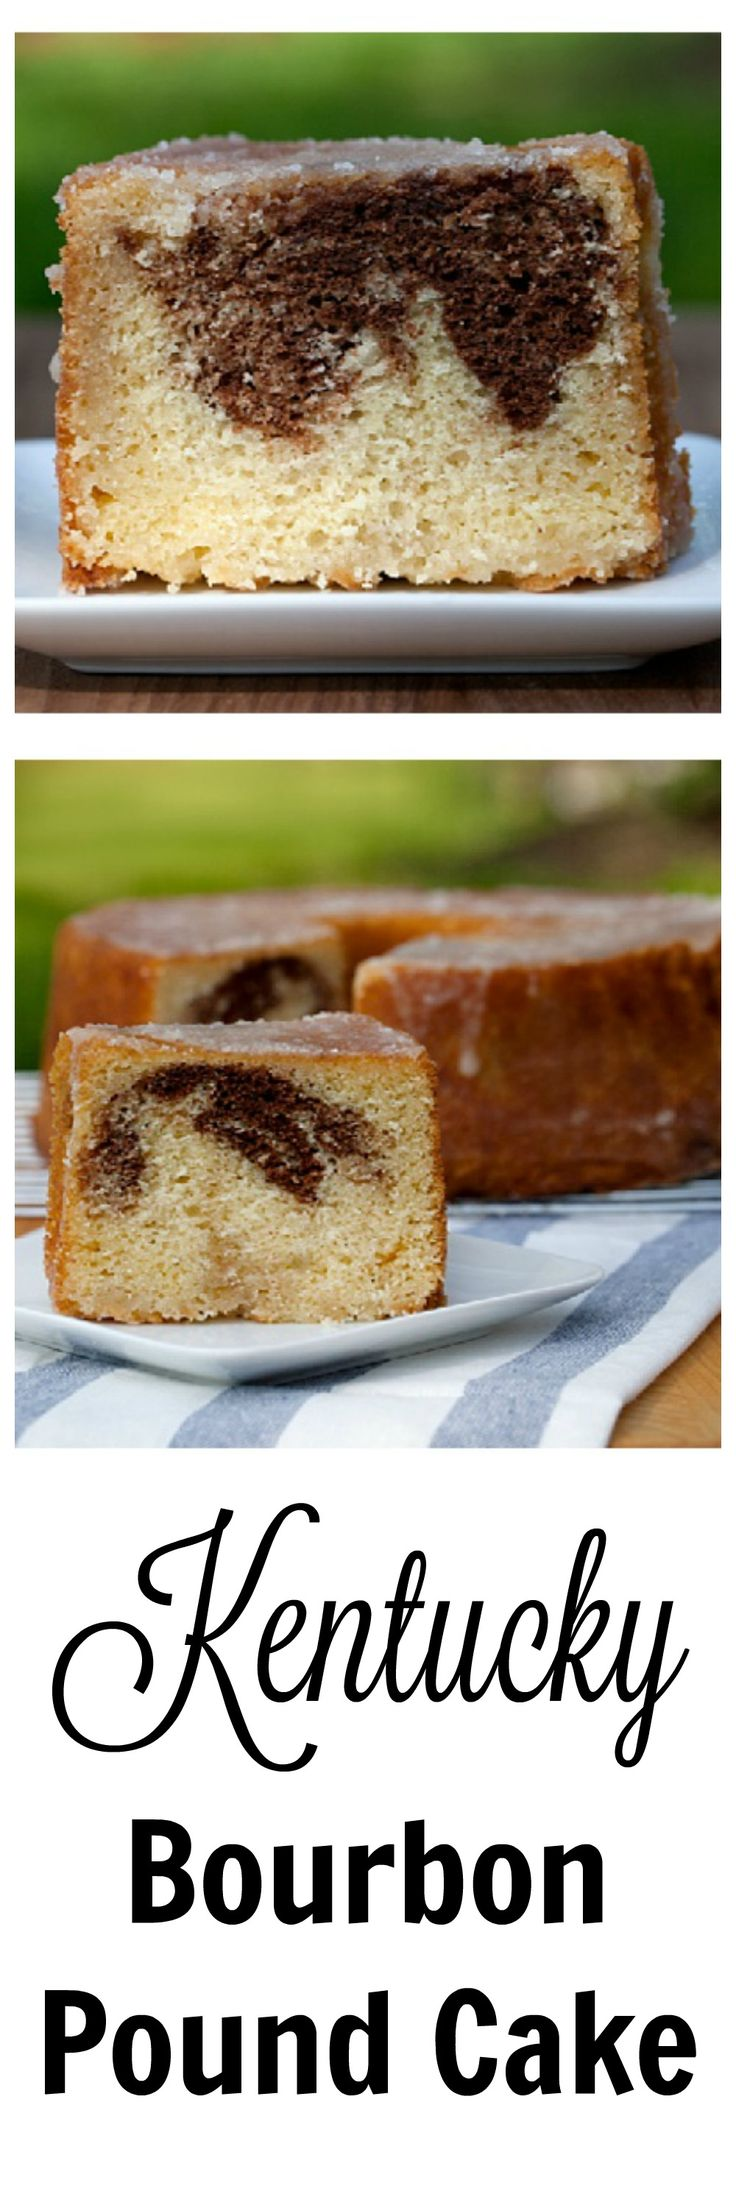 Pound cakes are a southern tradition. This bourbon pound cake is made ...